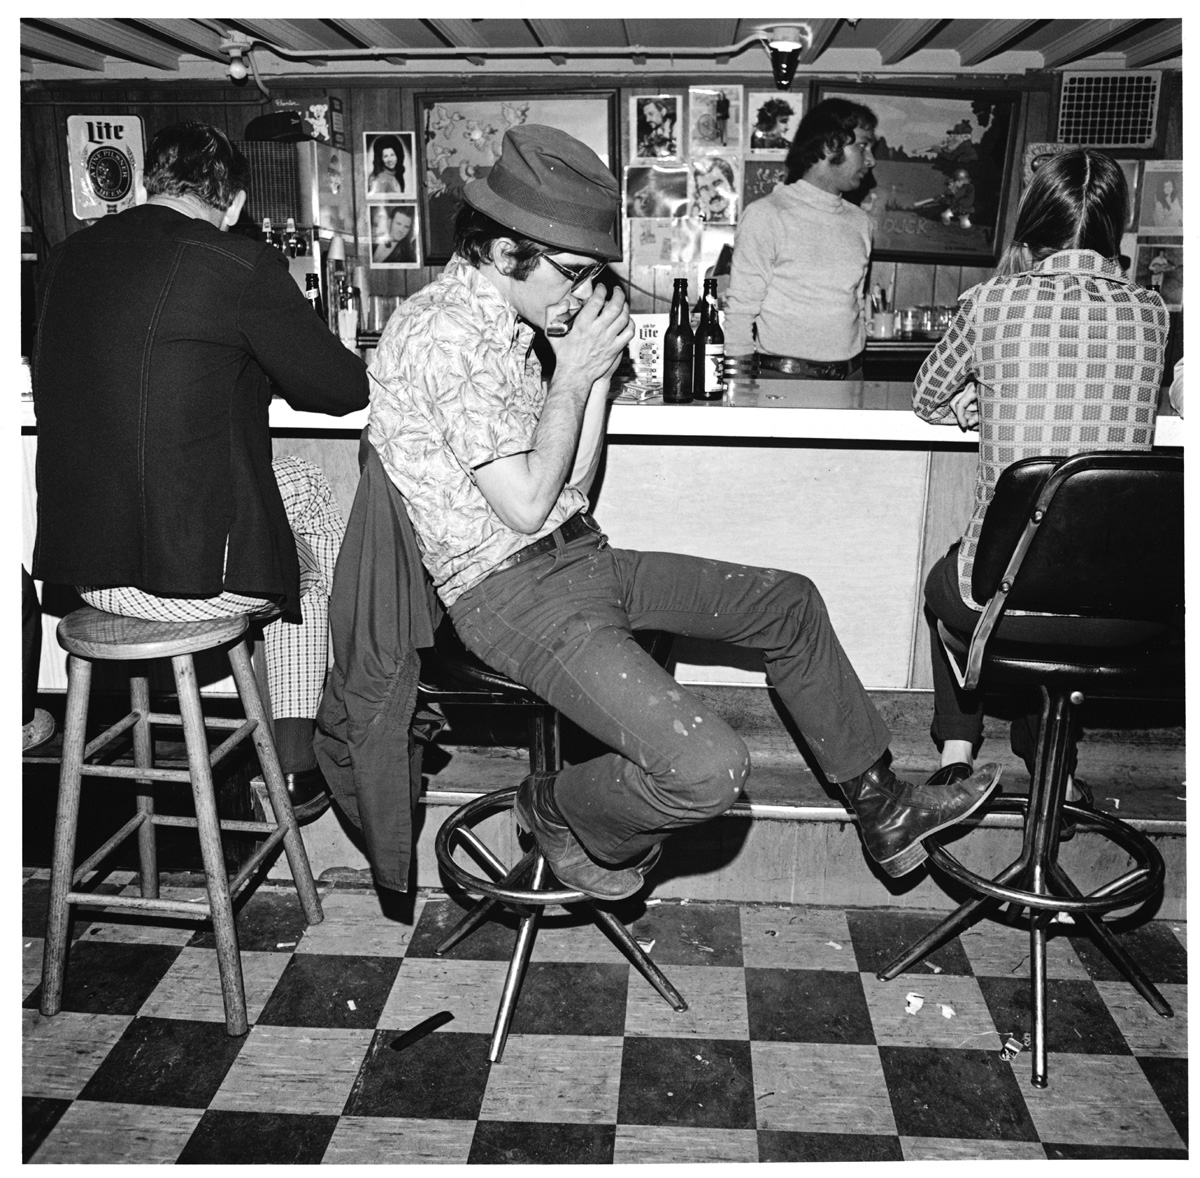 Merchants Nashville Harmonica Player Merchant 39s Cafe Nashville Tn 1974